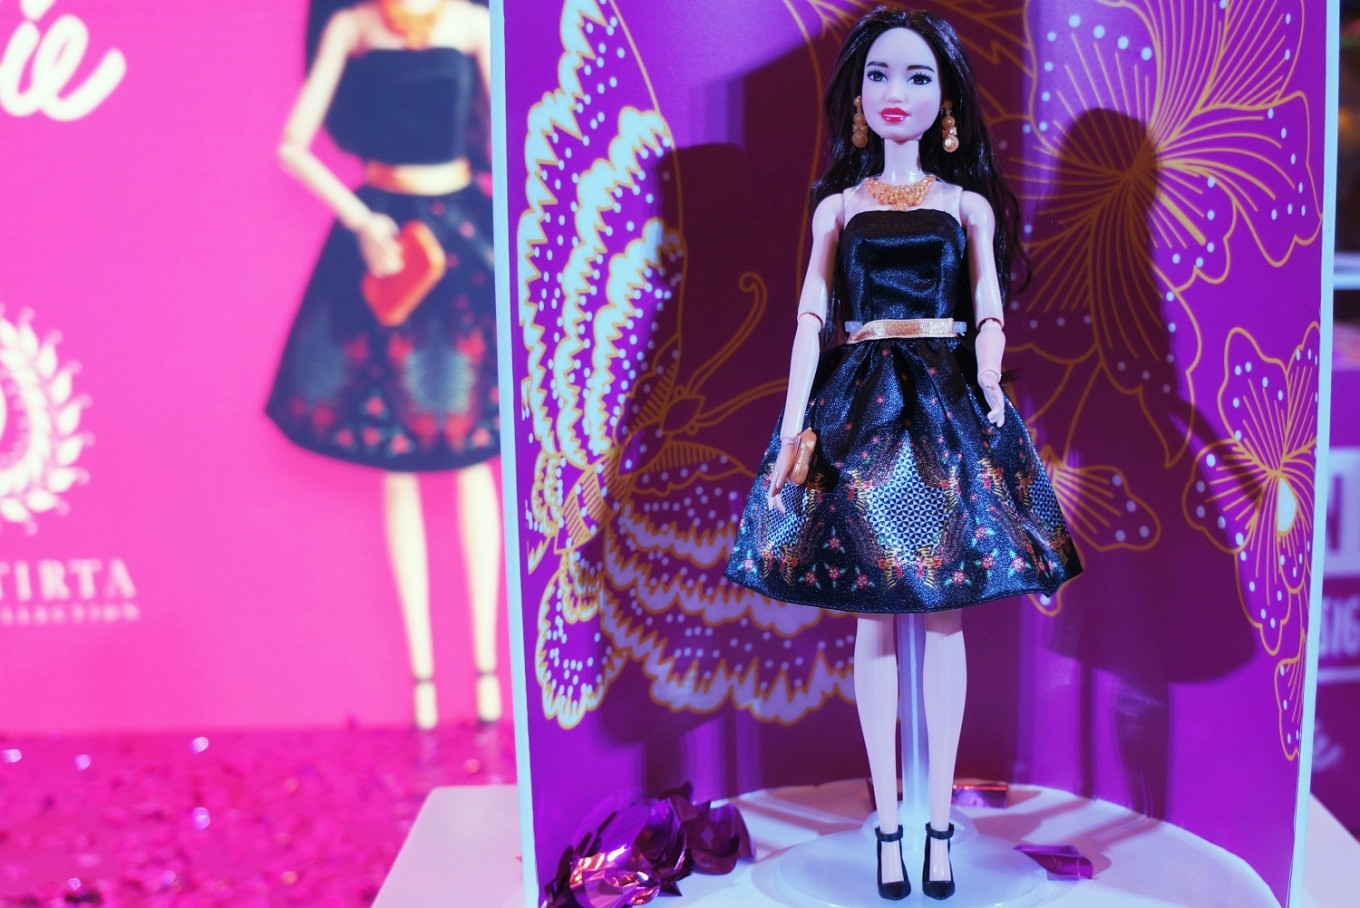 Mattel Indonesia launches Barbie Batik Kirana for younger generation